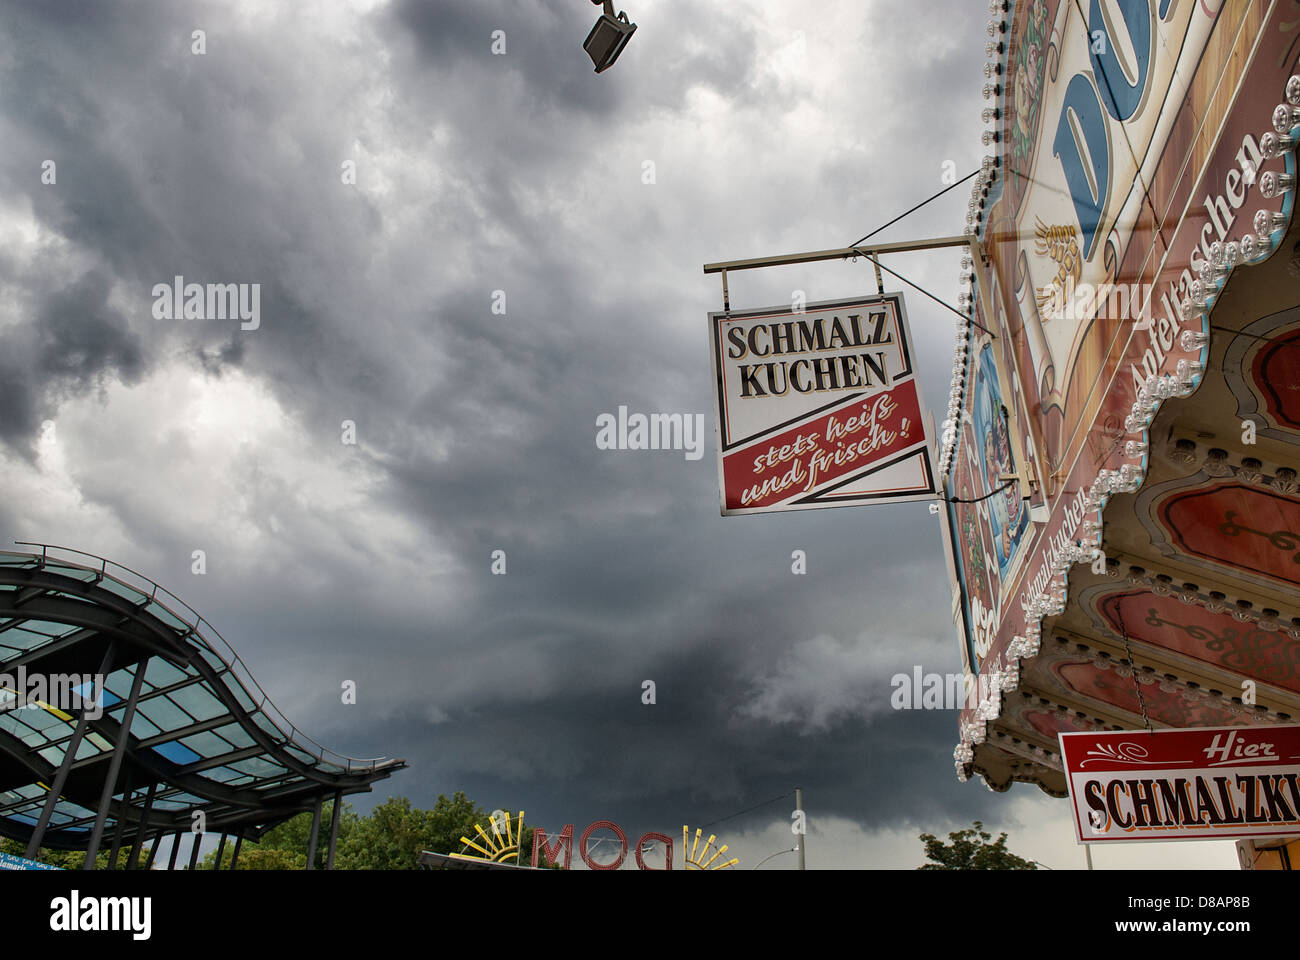 HAMBURGER DOM SCENE - Stock Image